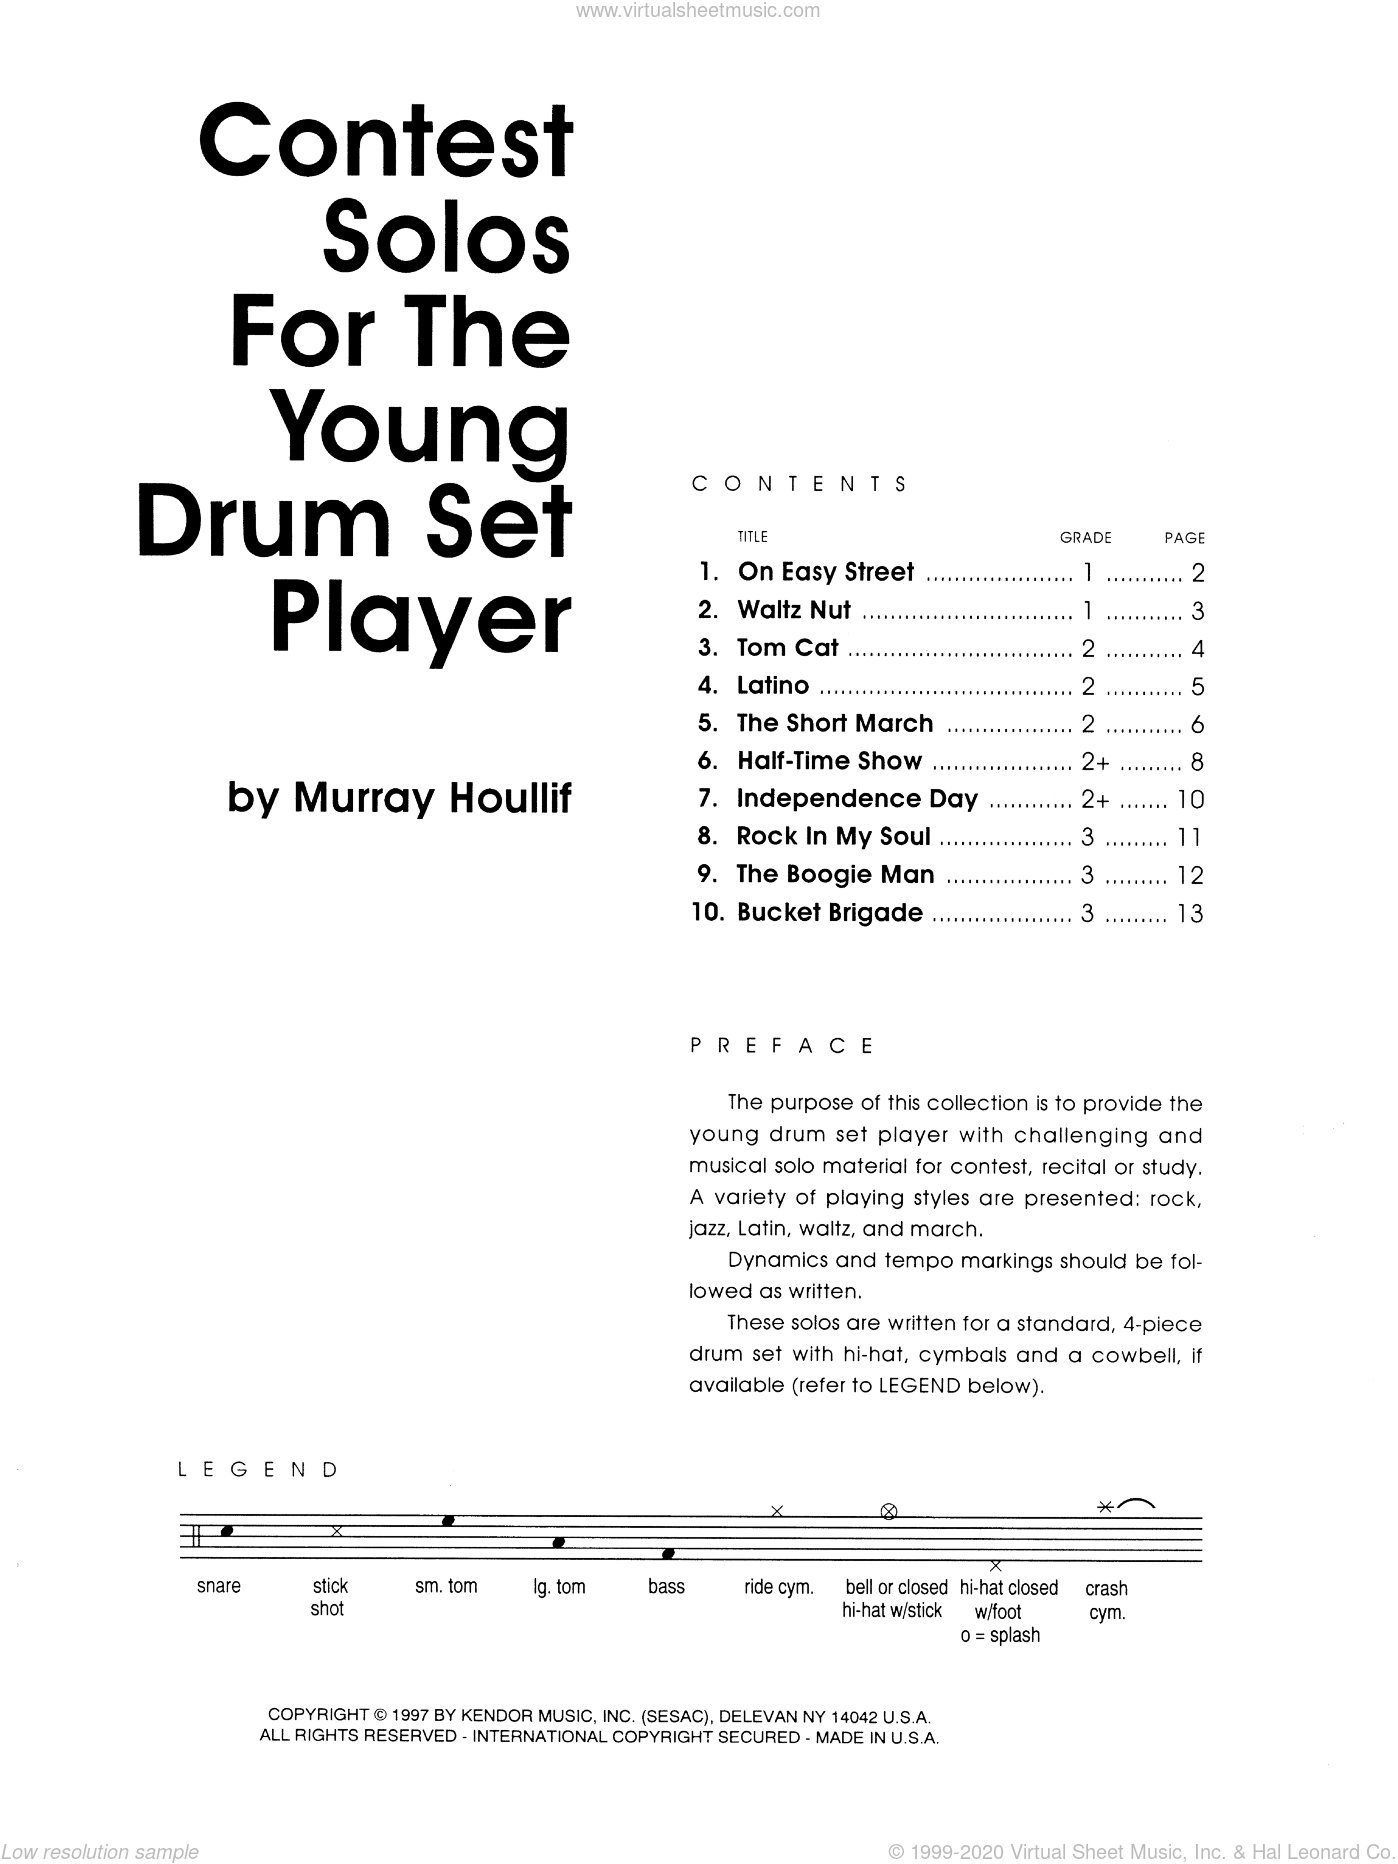 Contest Solos For The Young Drum Set Player sheet music for percussions by Houllif, classical score, intermediate